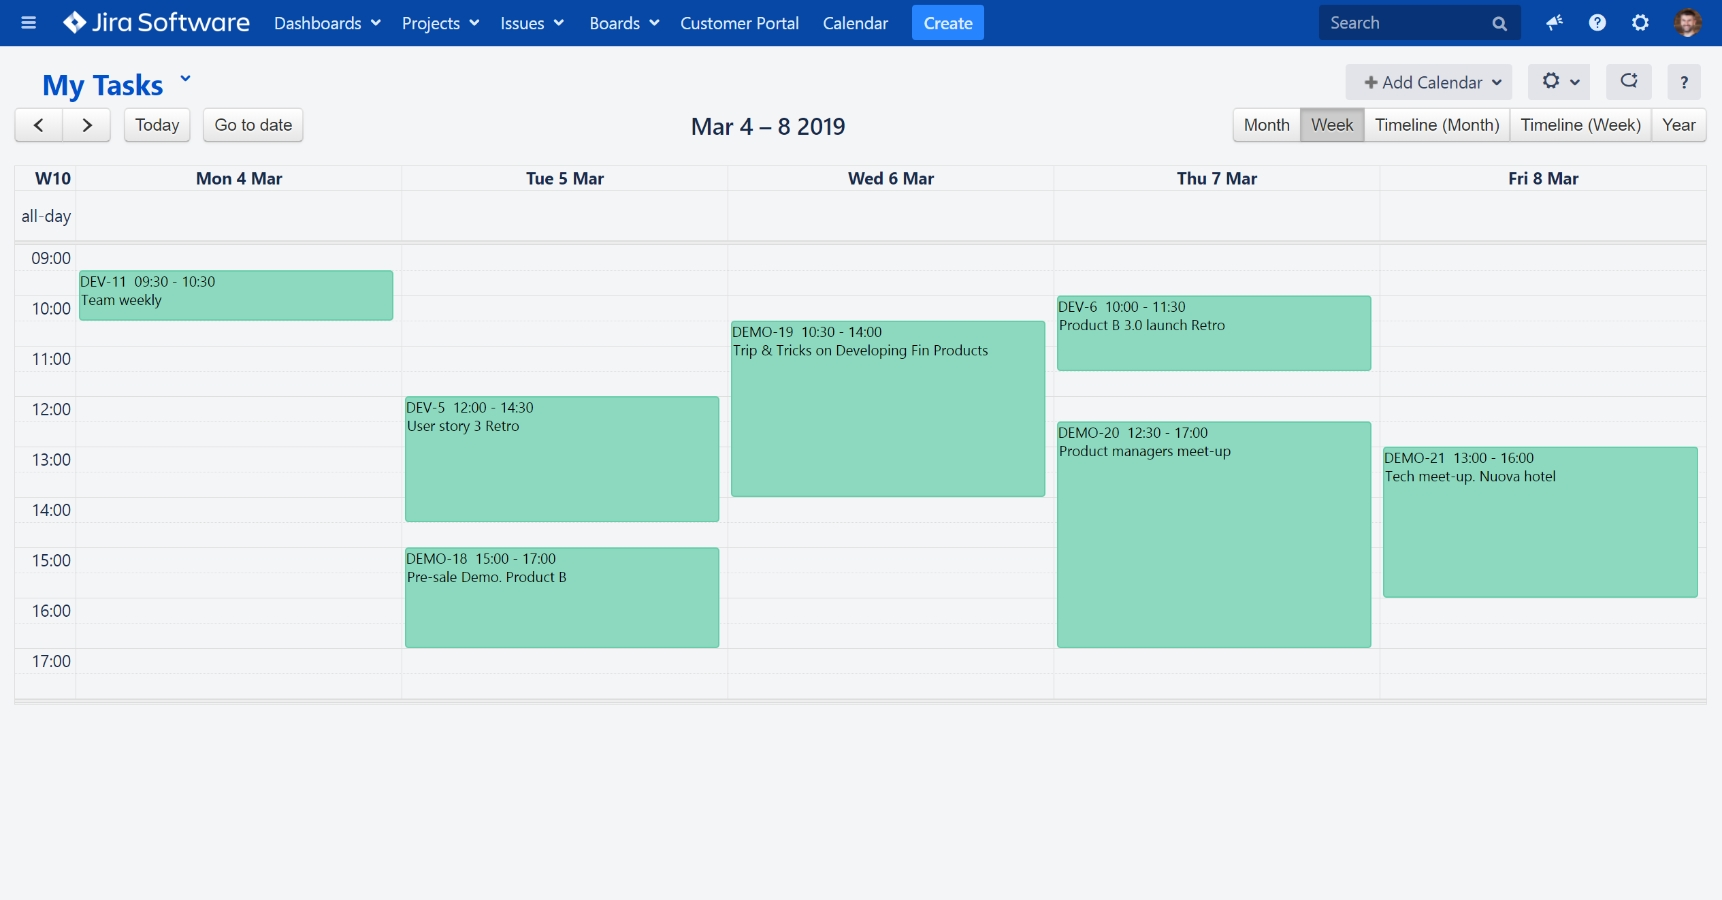 Calendar For Jira - Plan Team Activities | Atlassian Marketplace